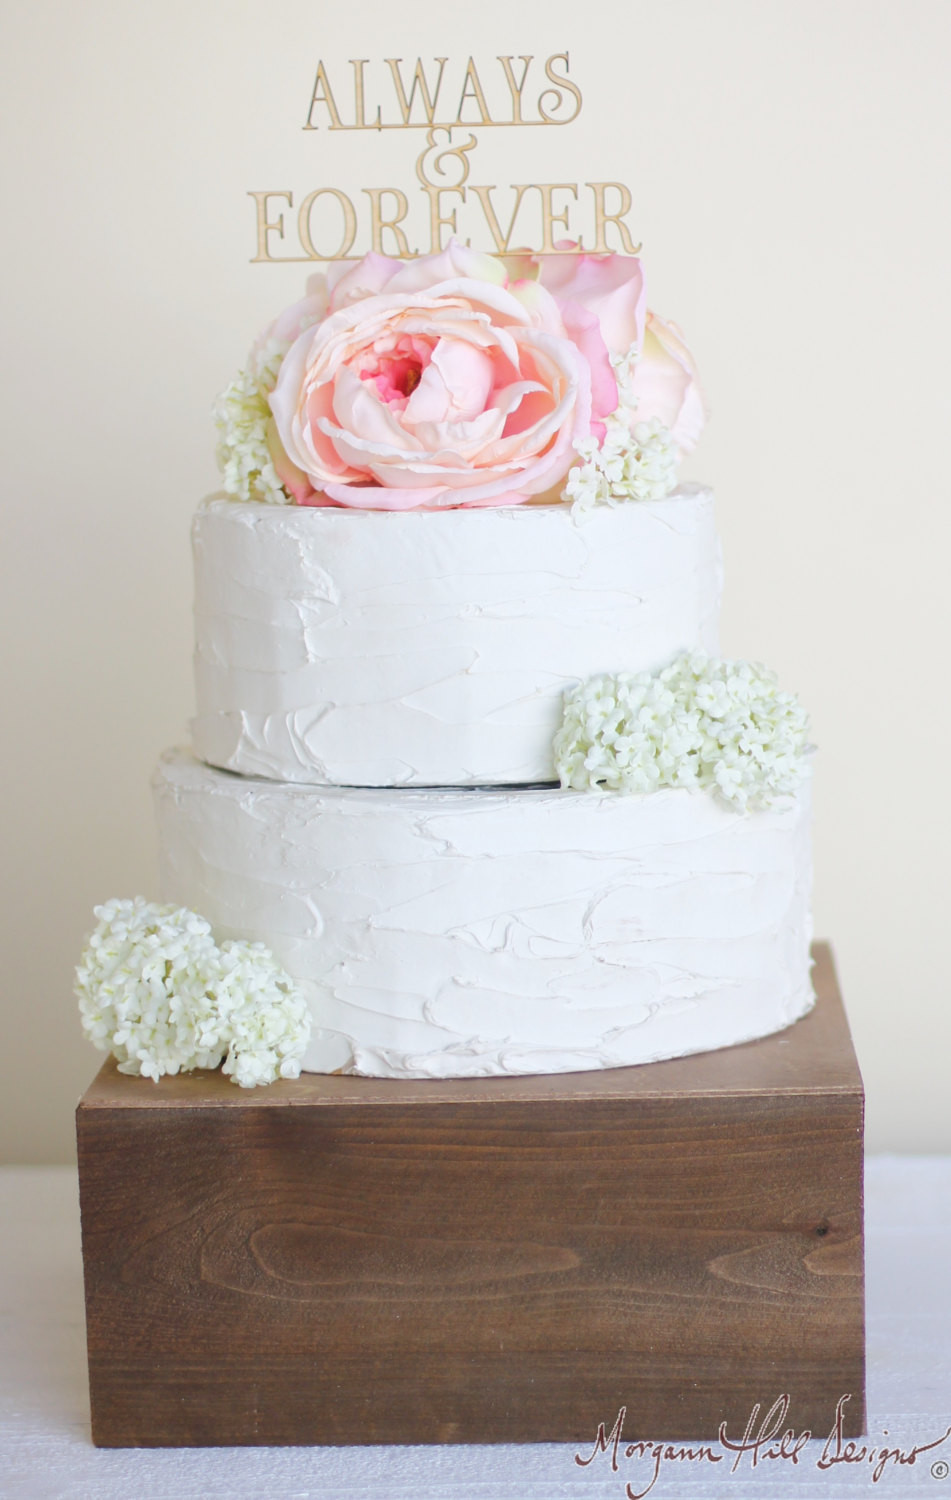 Toppers for Wedding Cakes 20 Best 27 Of the Cutest Wedding Cake toppers You Ll Ever See